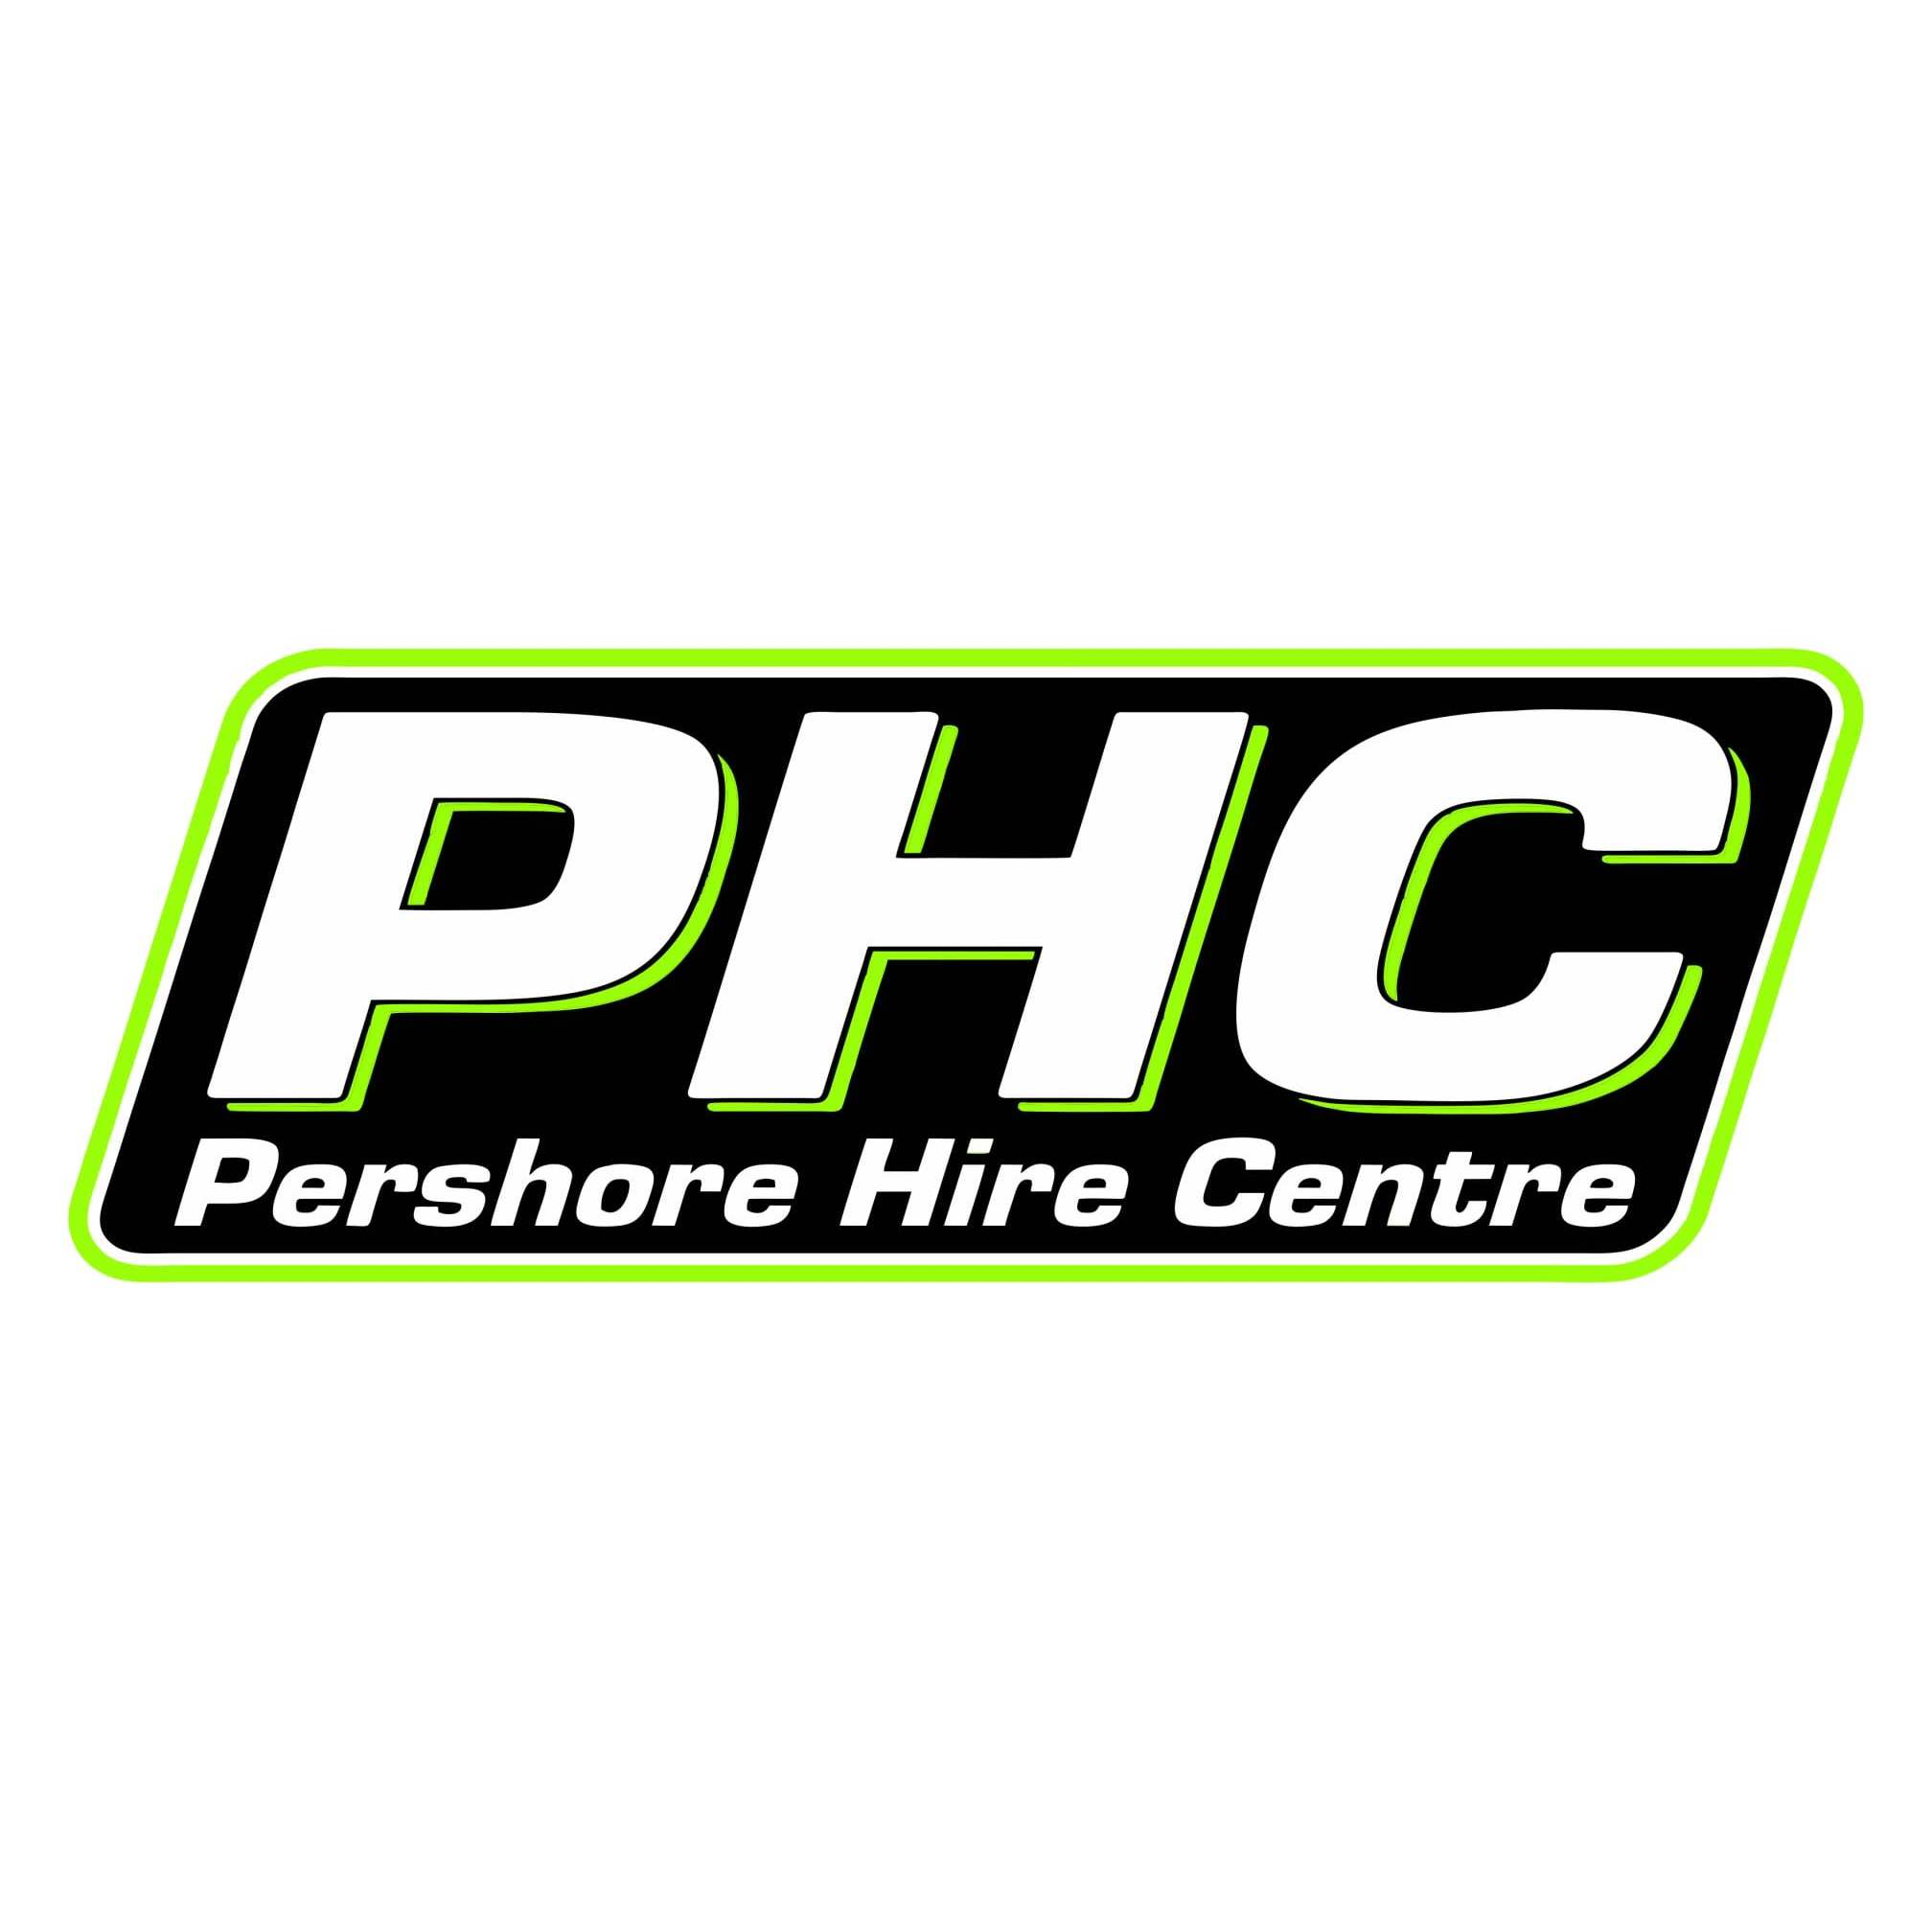 Pershore Hire Centre - Pershore, Worcestershire WR10 2EY - 01386 553808 | ShowMeLocal.com